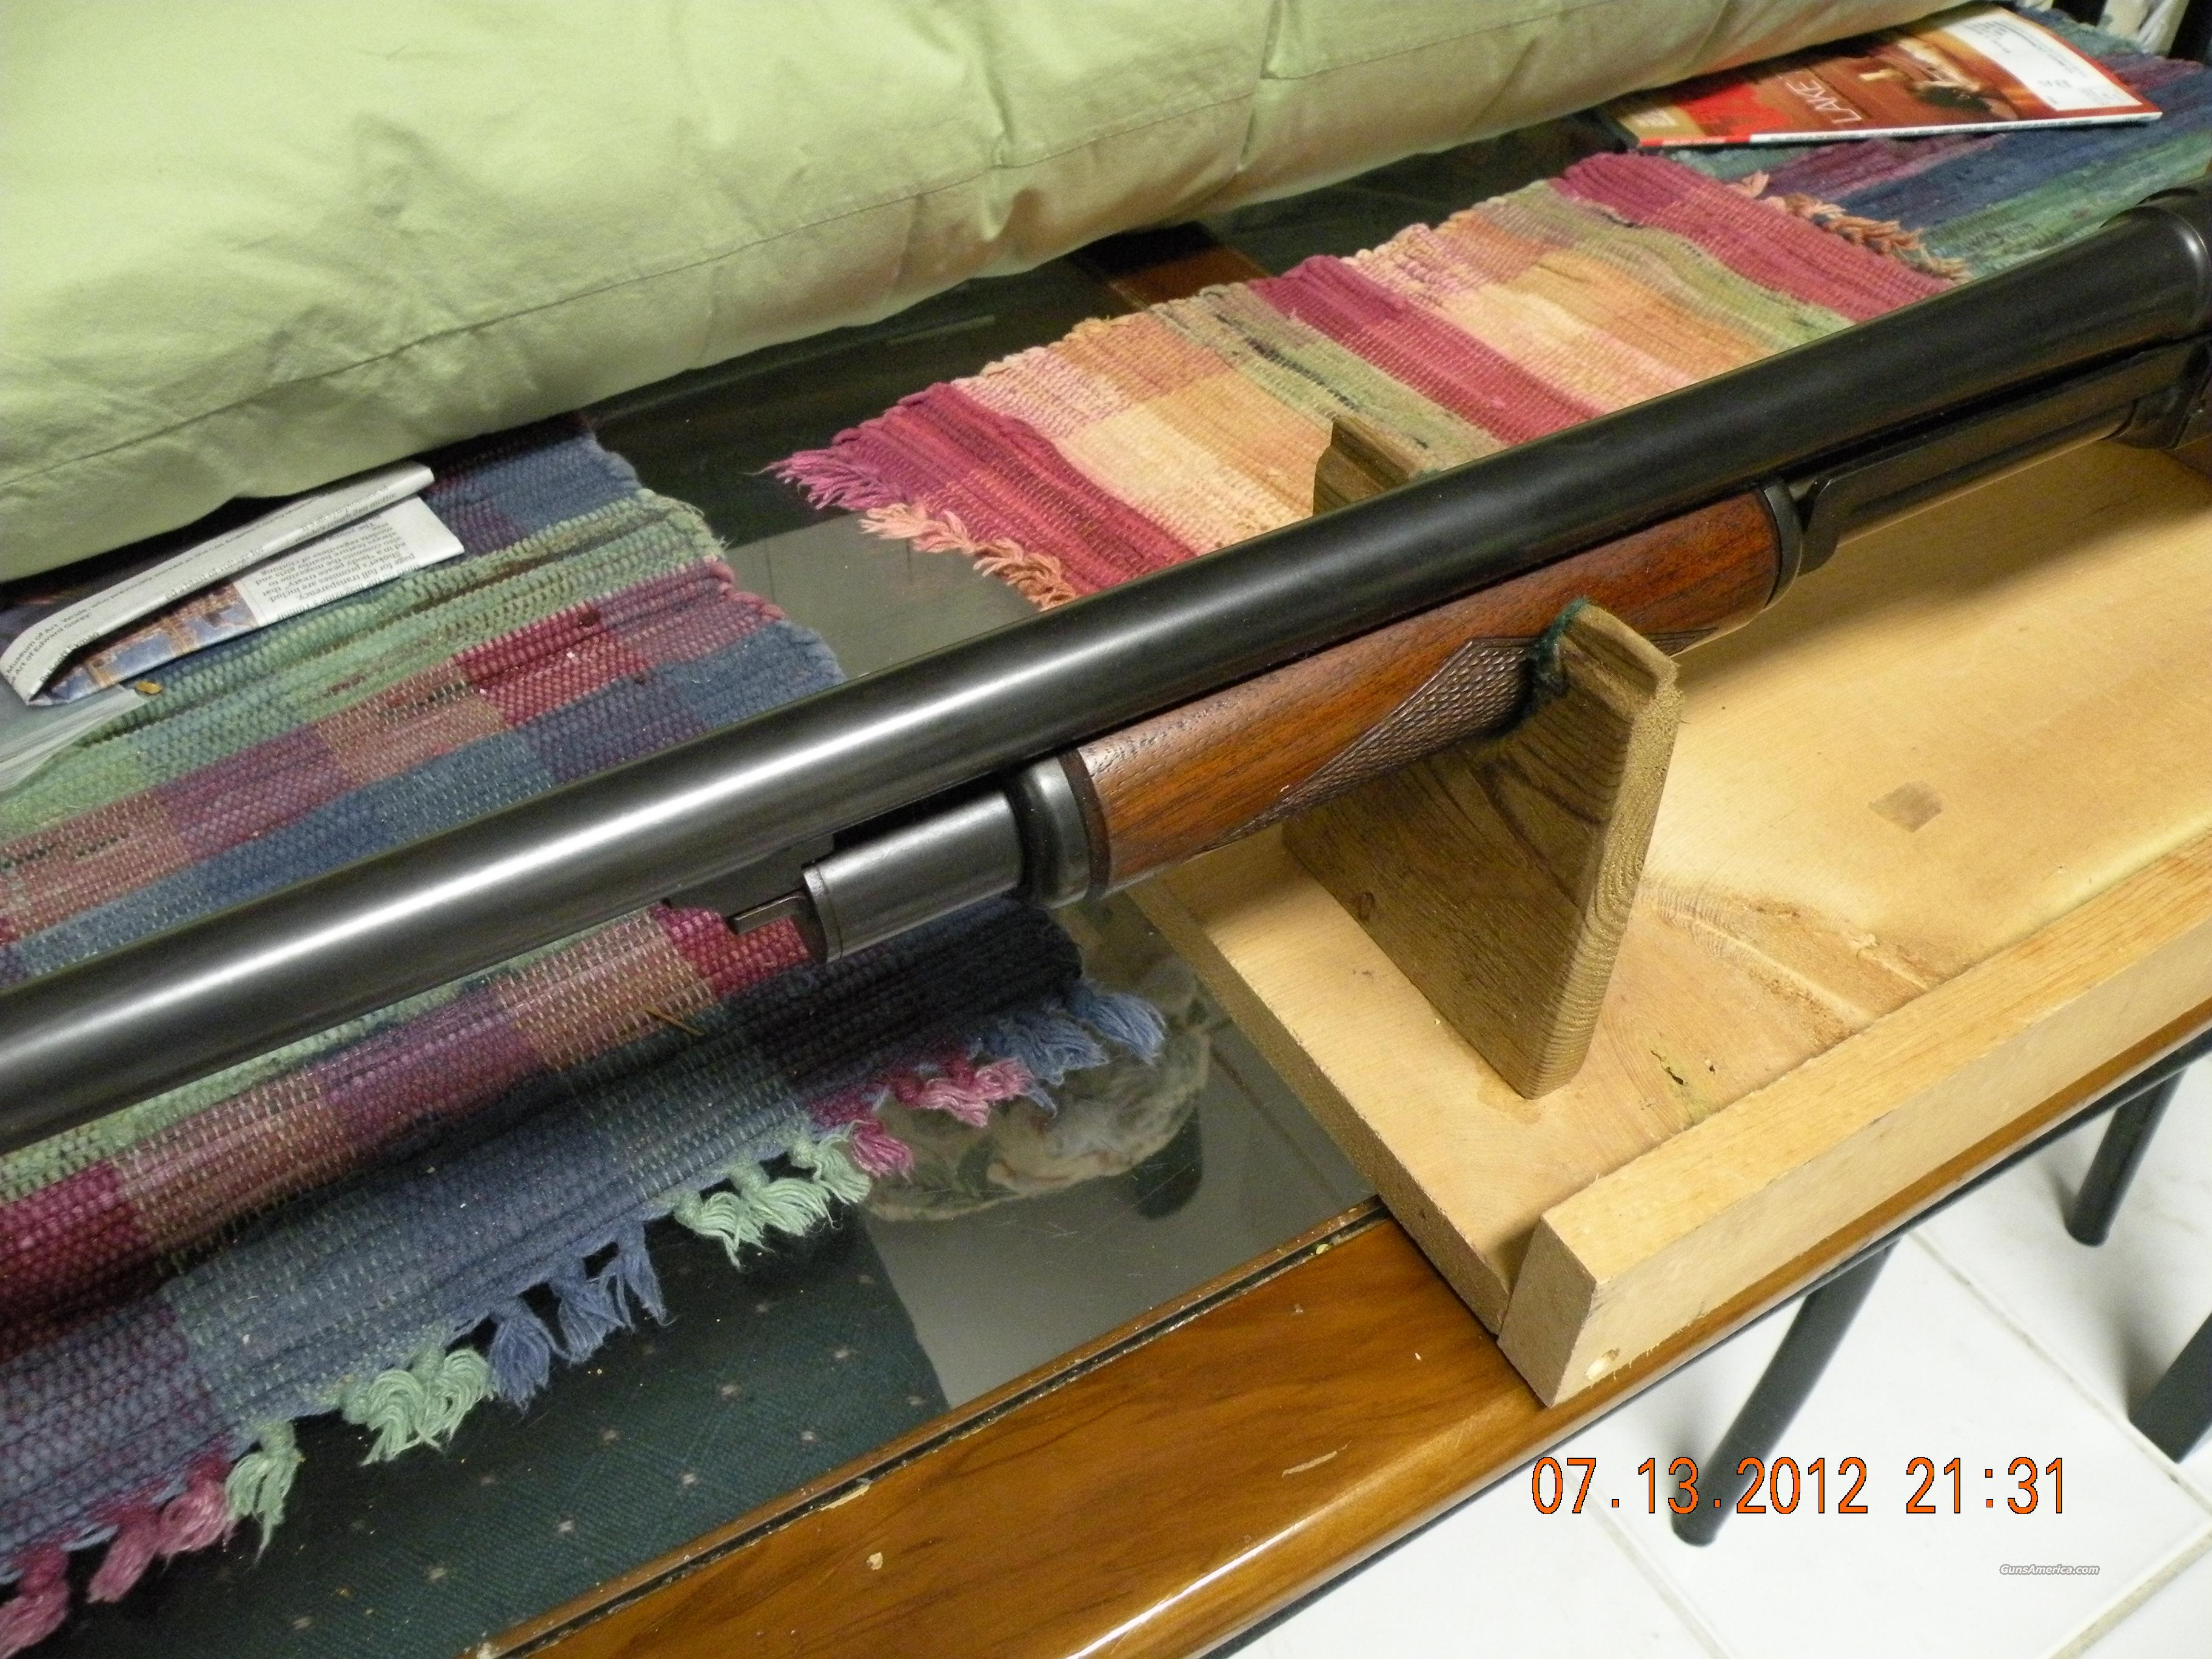 Ward's Western Field Model 30 Shotgun 12 gauge  Guns > Shotguns > W Misc Shotguns